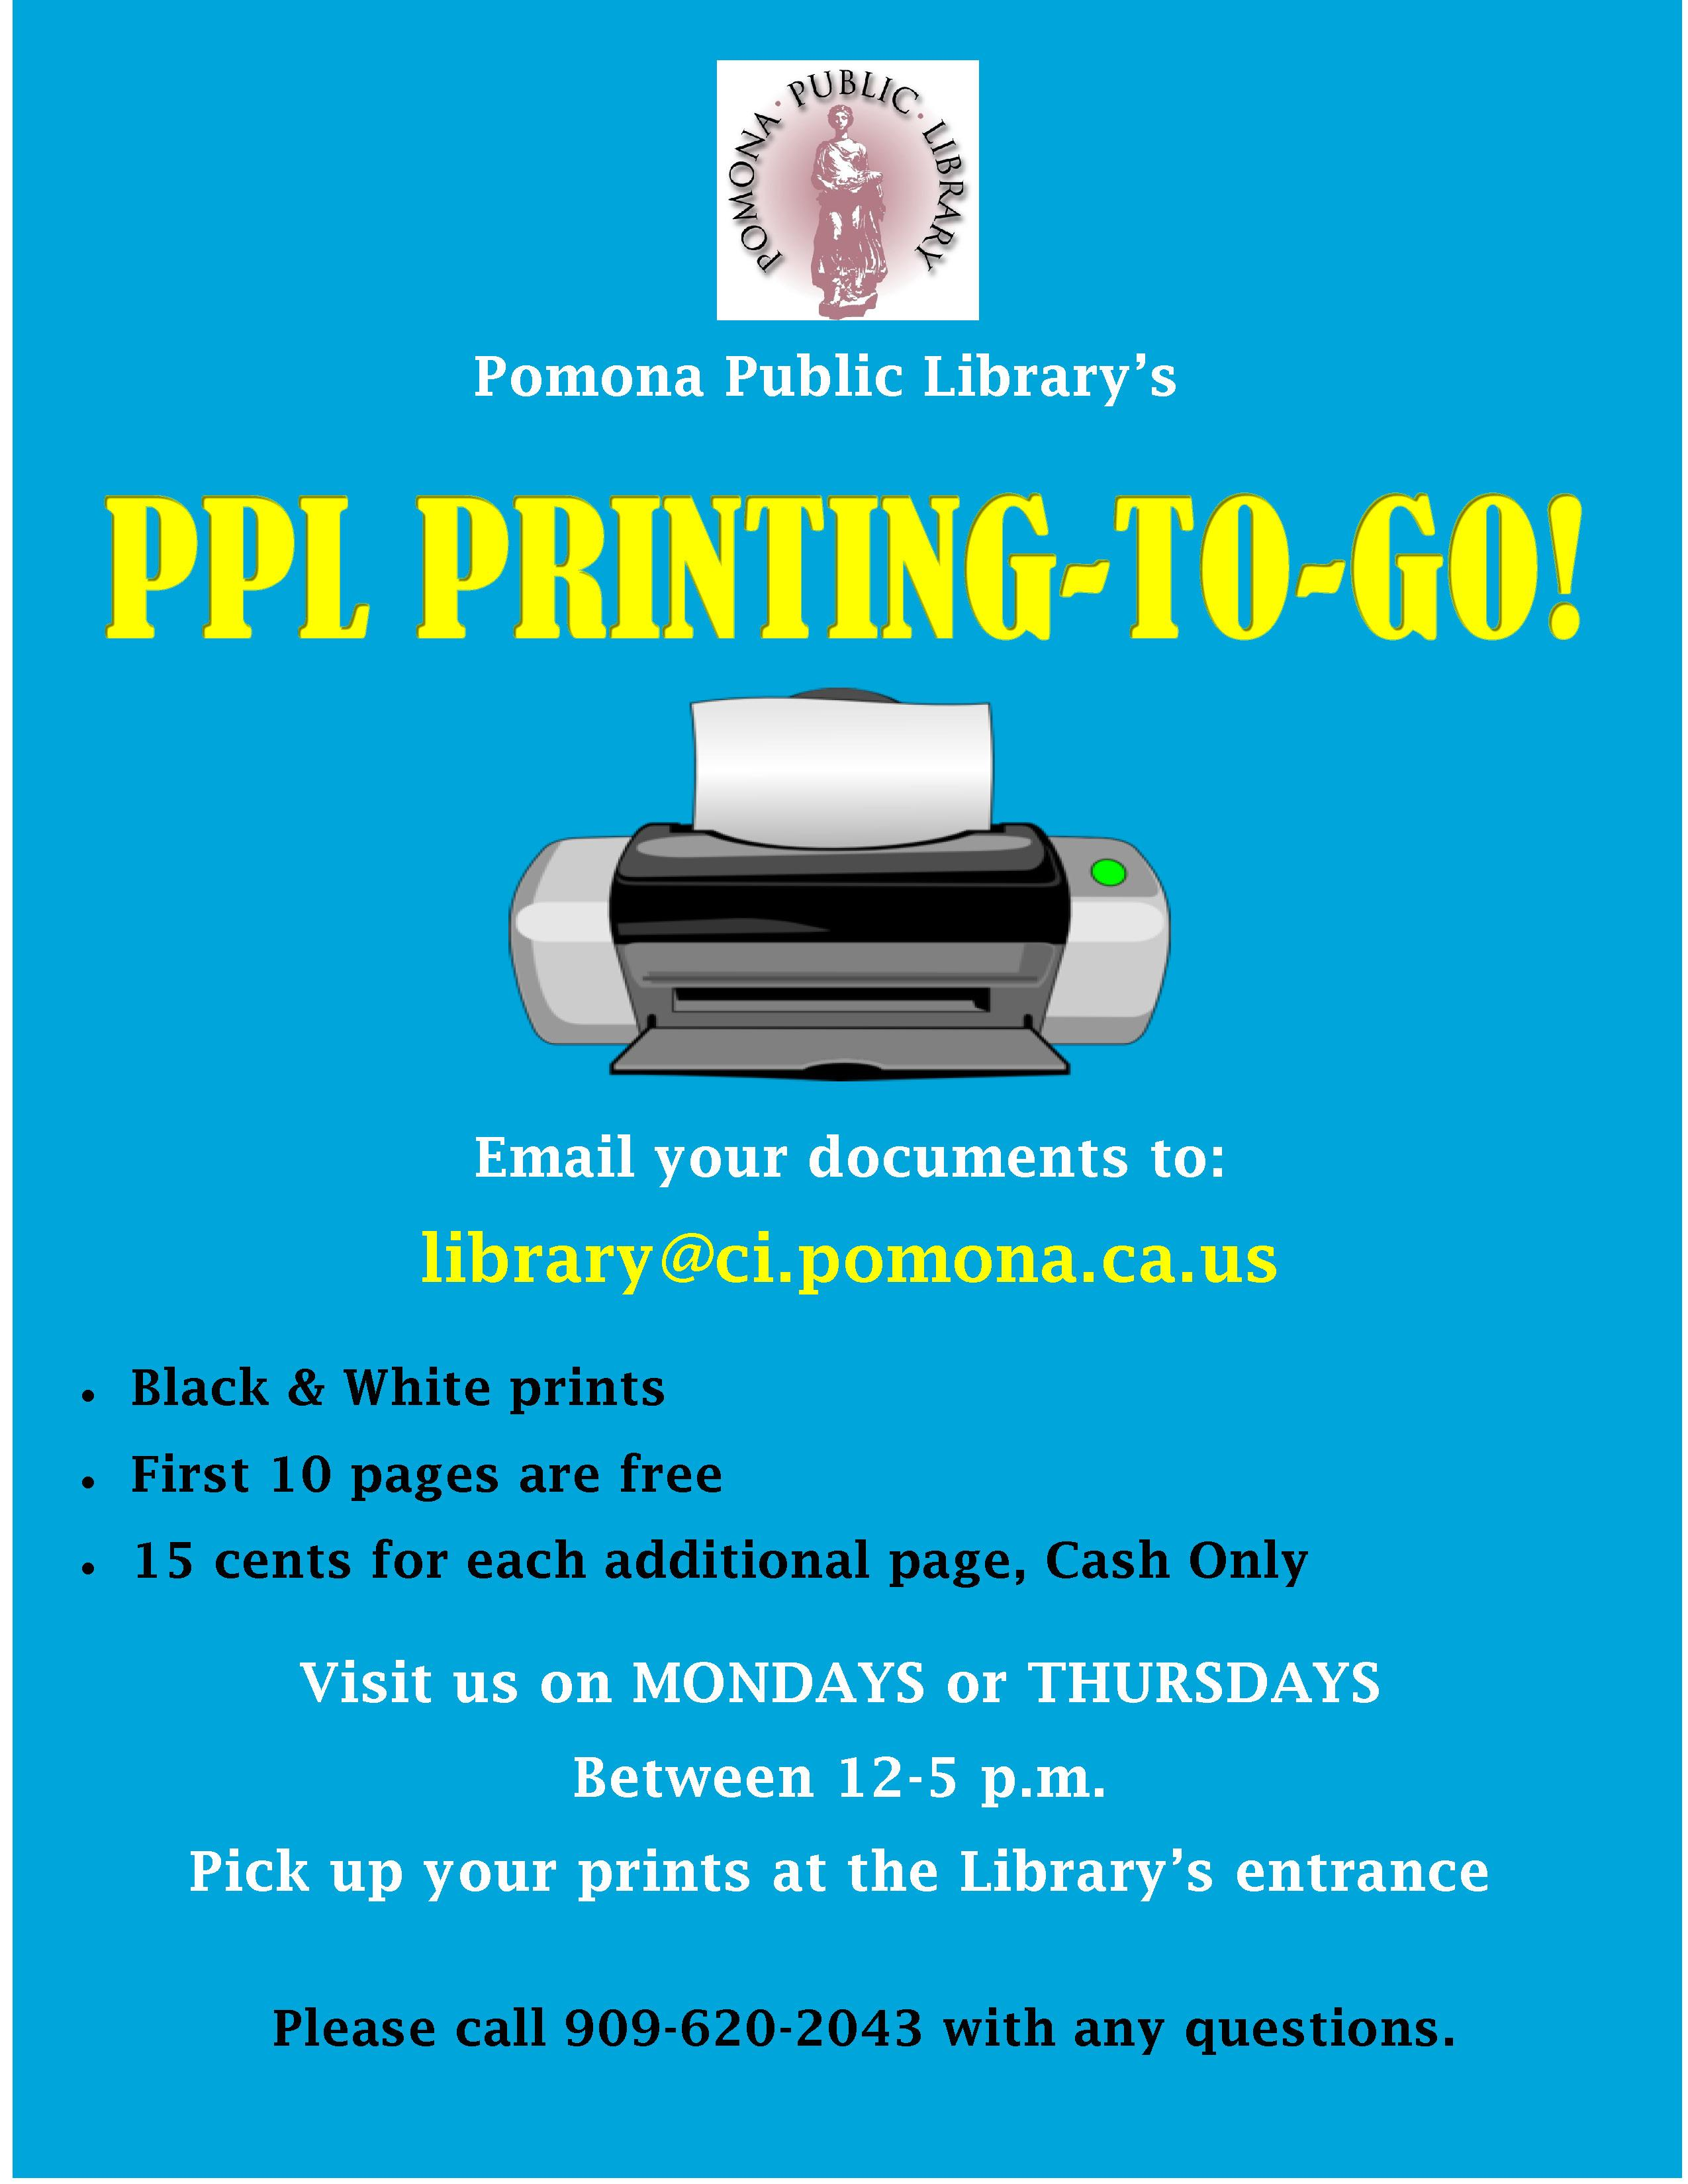 Visit us on MONDAYS or THURSDAYS Between 12-5 p.m. Pick up your prints at the Library's entrance Please call 909-620-2043 with any questions.